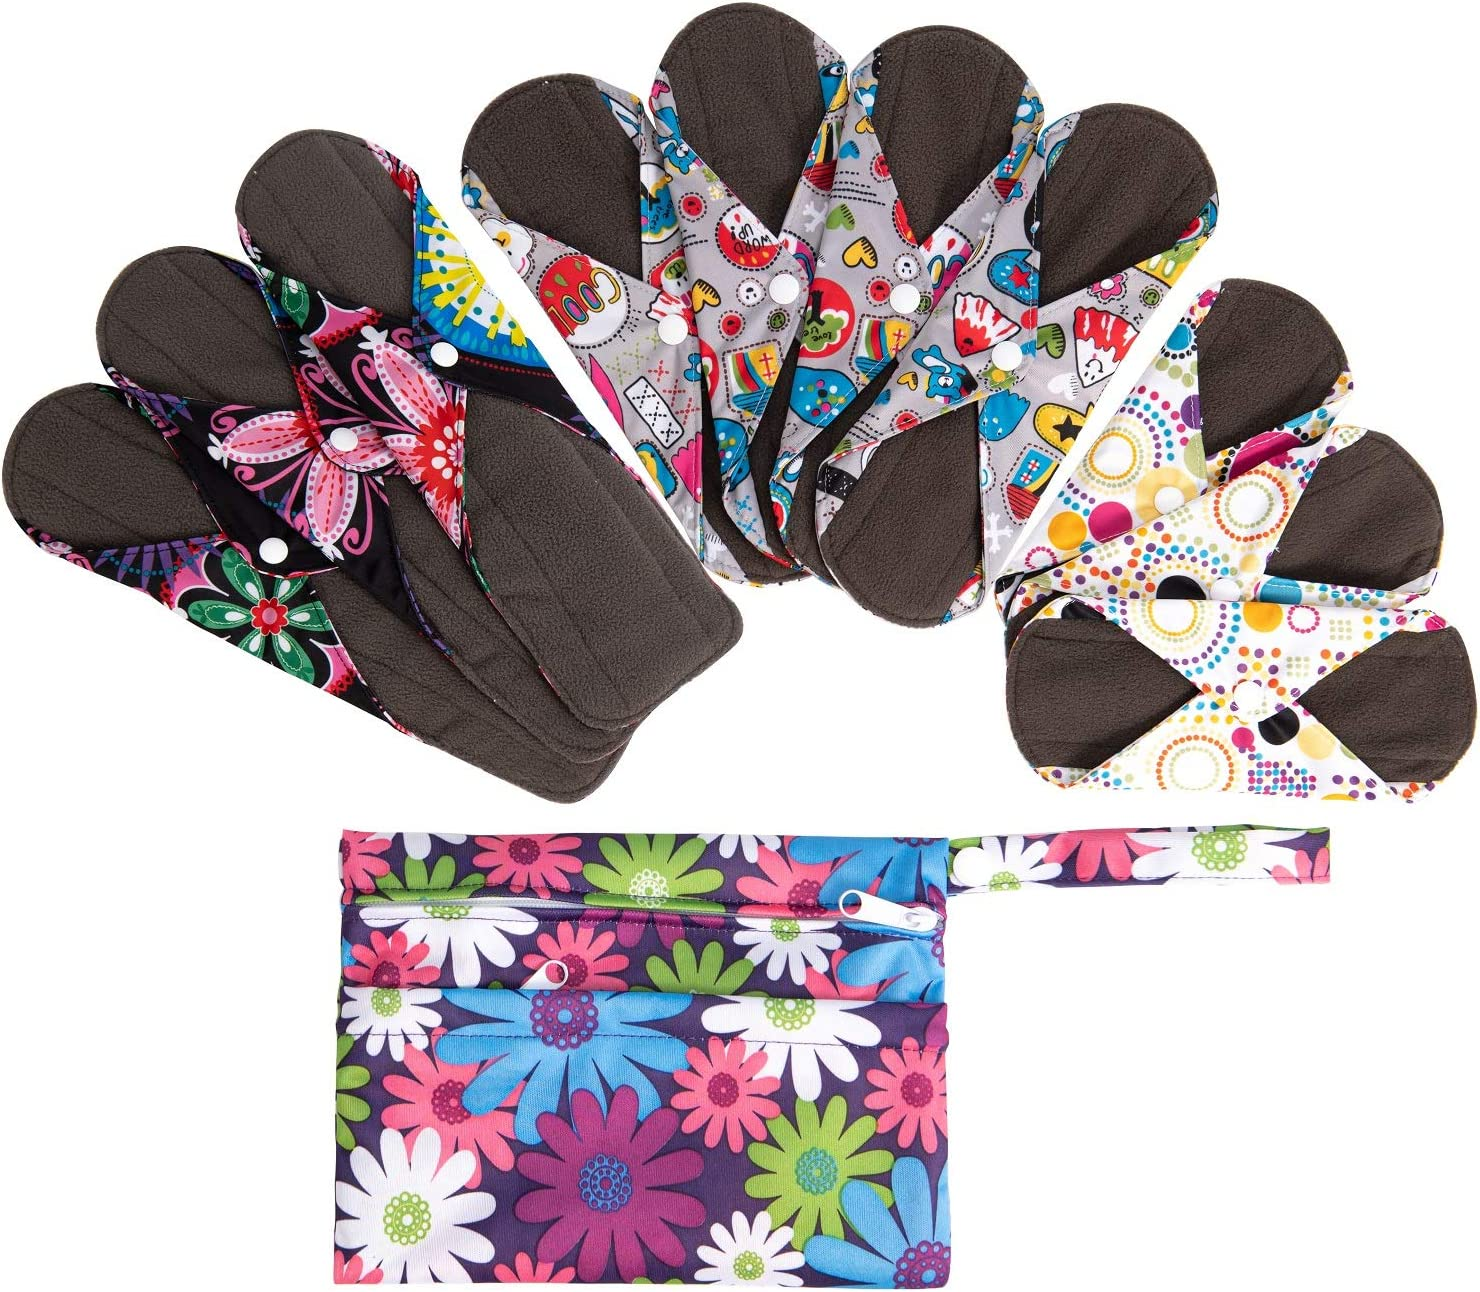 Amazon Com 10pcs Sanitary Pads Reusable Washable Charcoal Cloth Menstrual Pads With Wet Bag Super Absorbent And Comfortable Panty Liners 3pcs 8 4pcs 9 8 3pcs 12 6 Health Personal Care